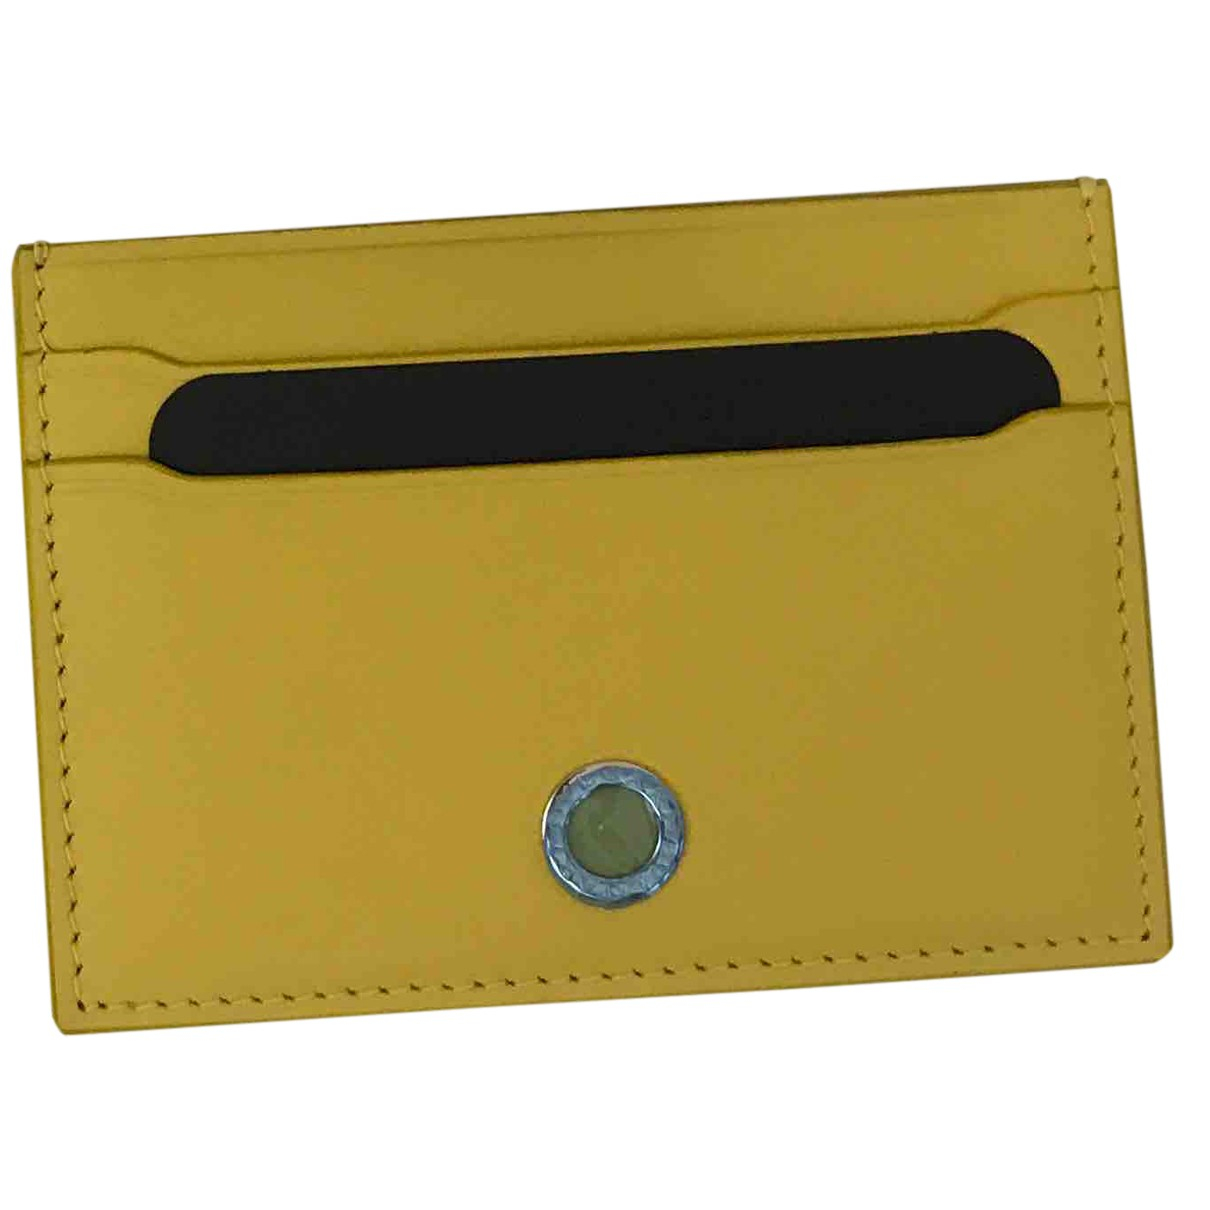 Bvlgari N Yellow Leather Purses, wallet & cases for Women N